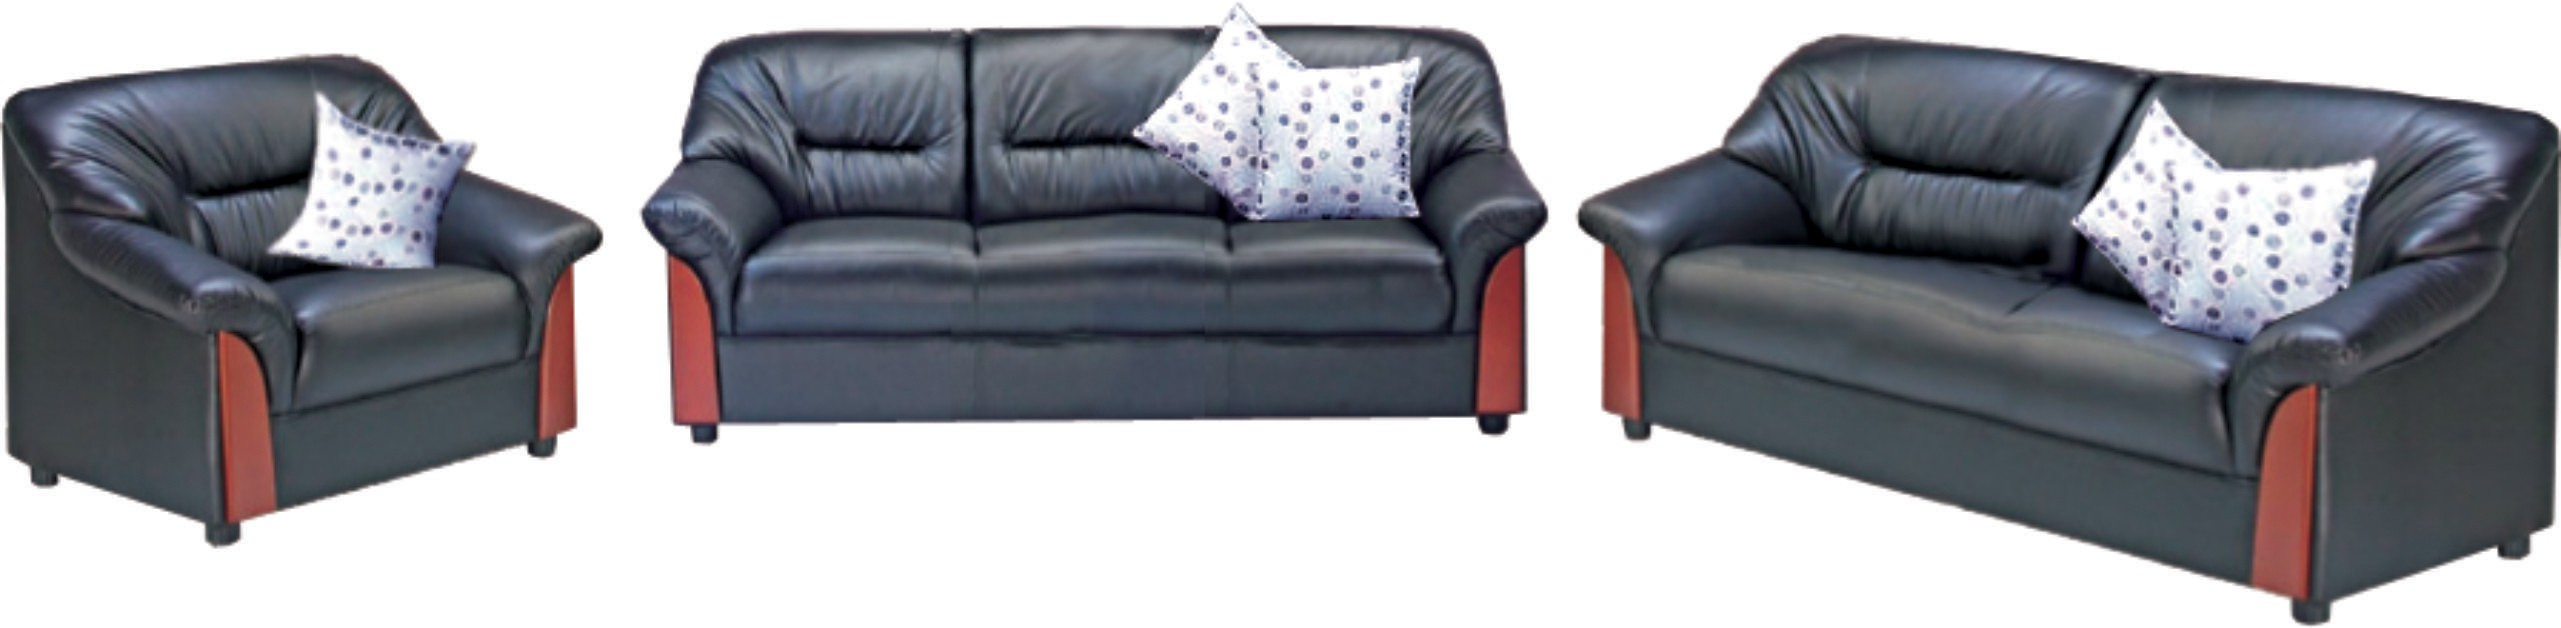 Godrej Interio Parto Sofa Set Solid Wood 3 2 1 Sofa Set Furniture Price In Indian Cities